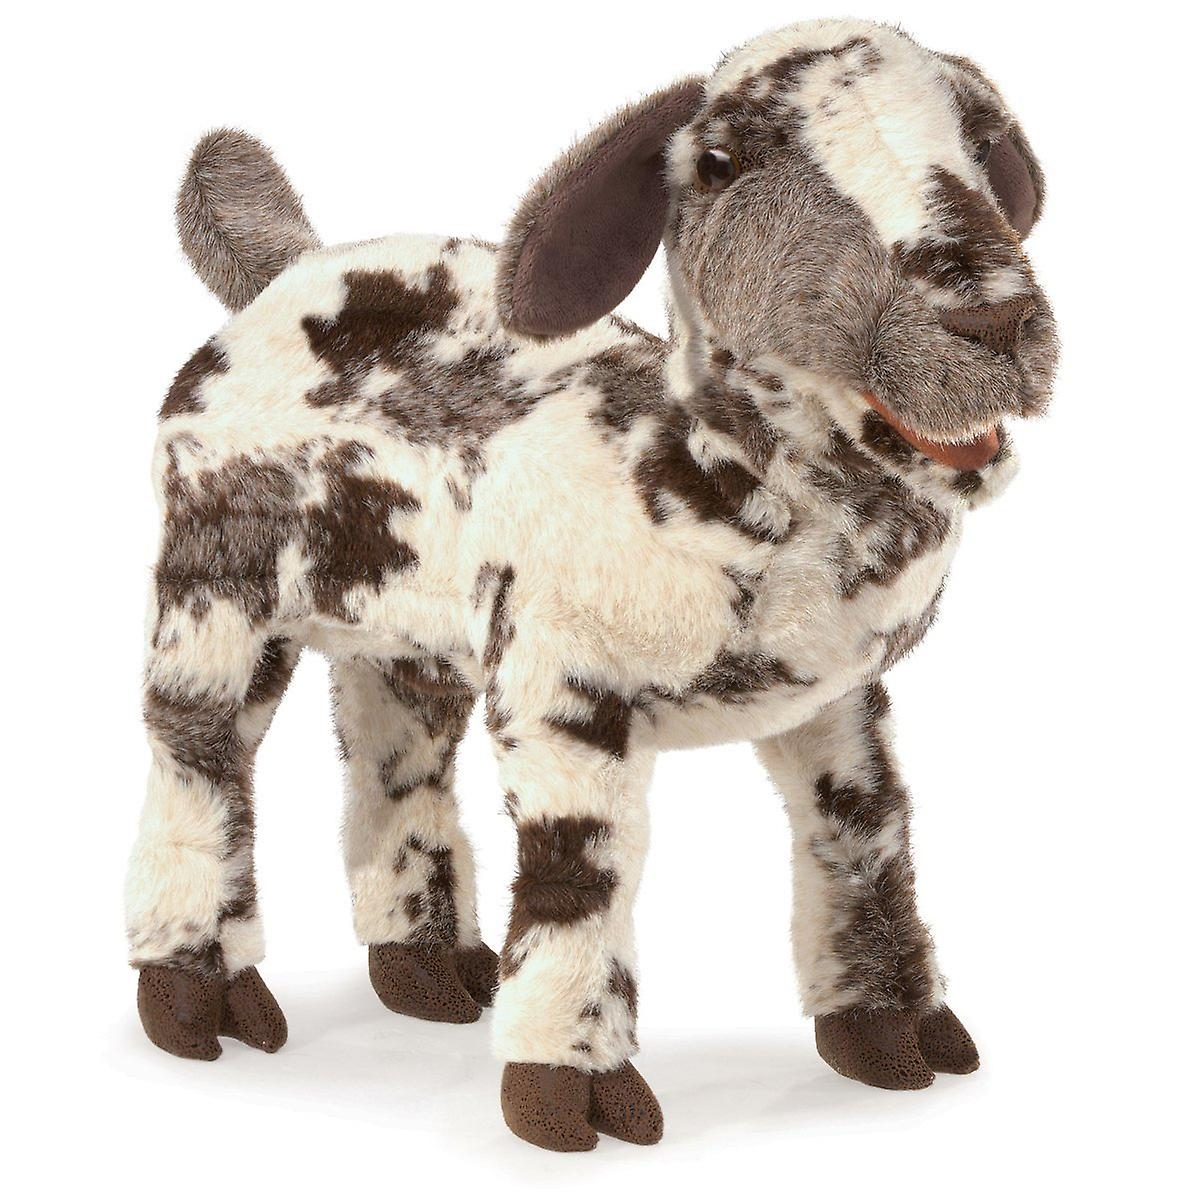 Hand Puppet - Folkhommeis - Goat Screaming nouveau Toys Soft Doll Plush 3112